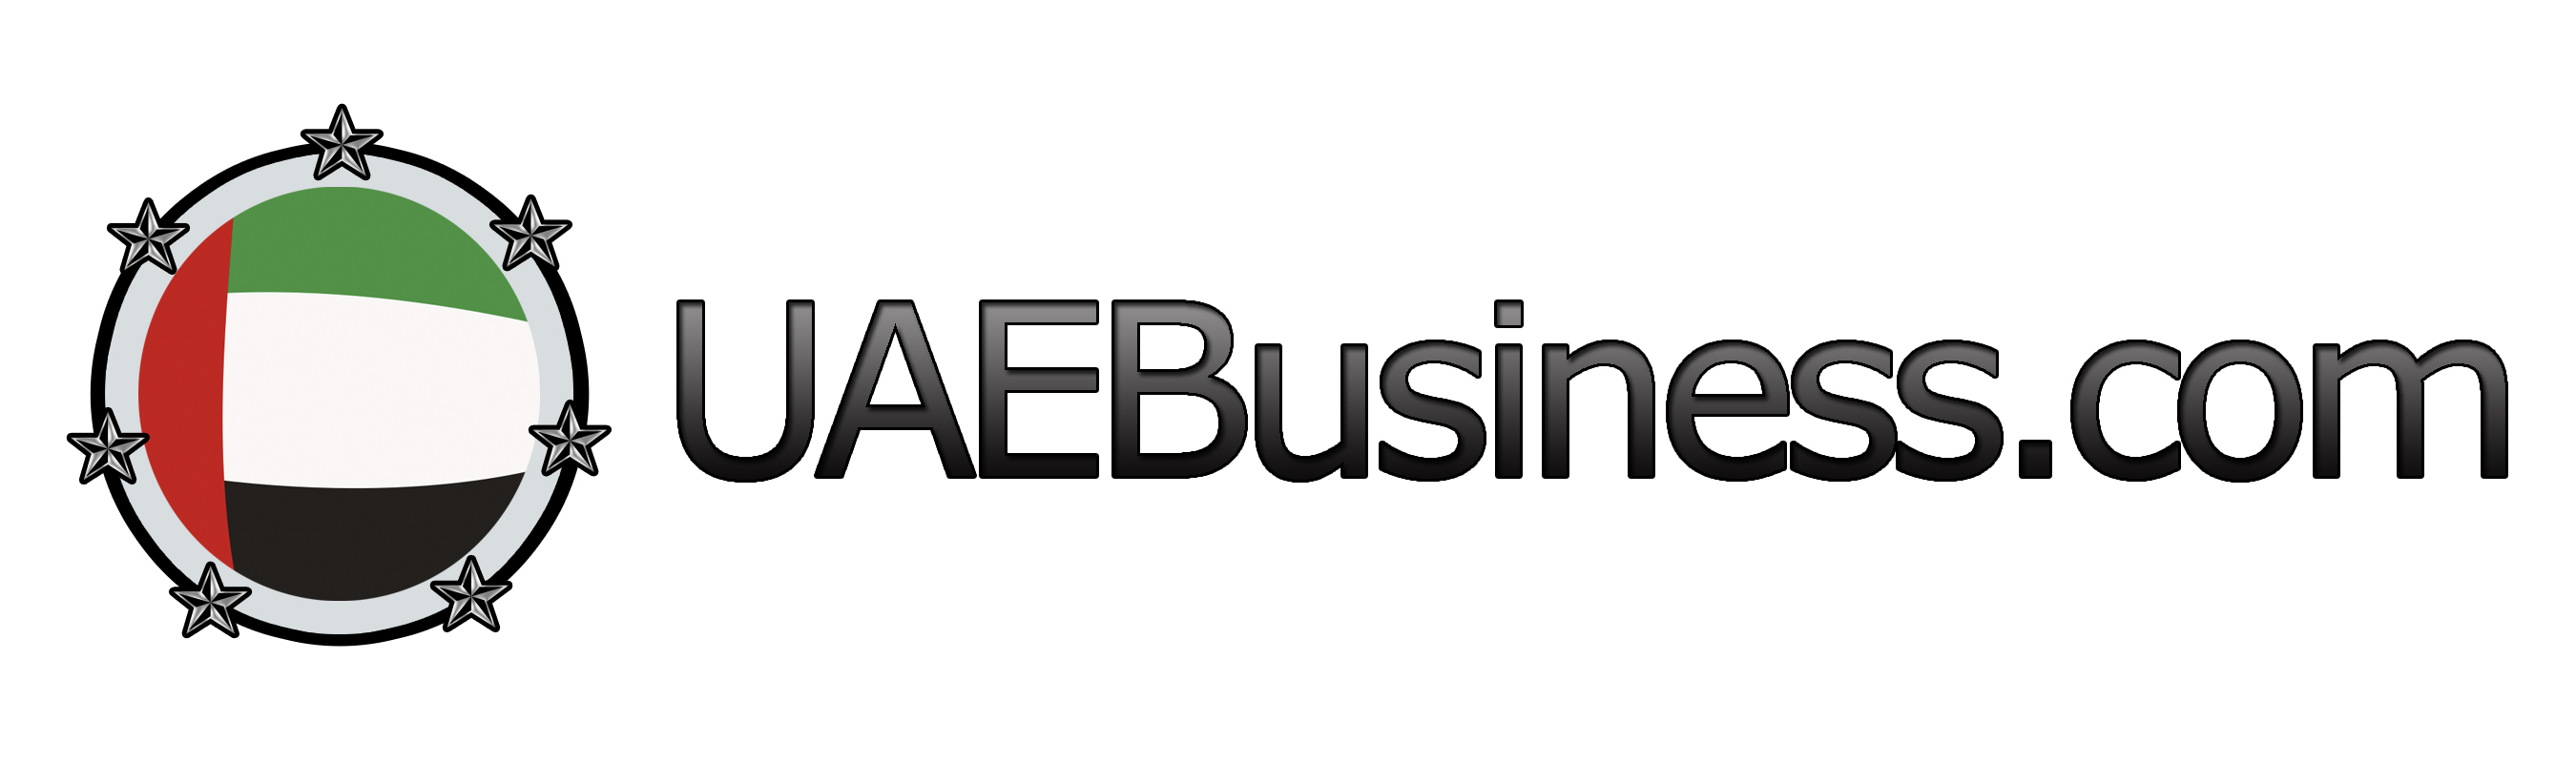 UAEBusiness.com platform for Businesses